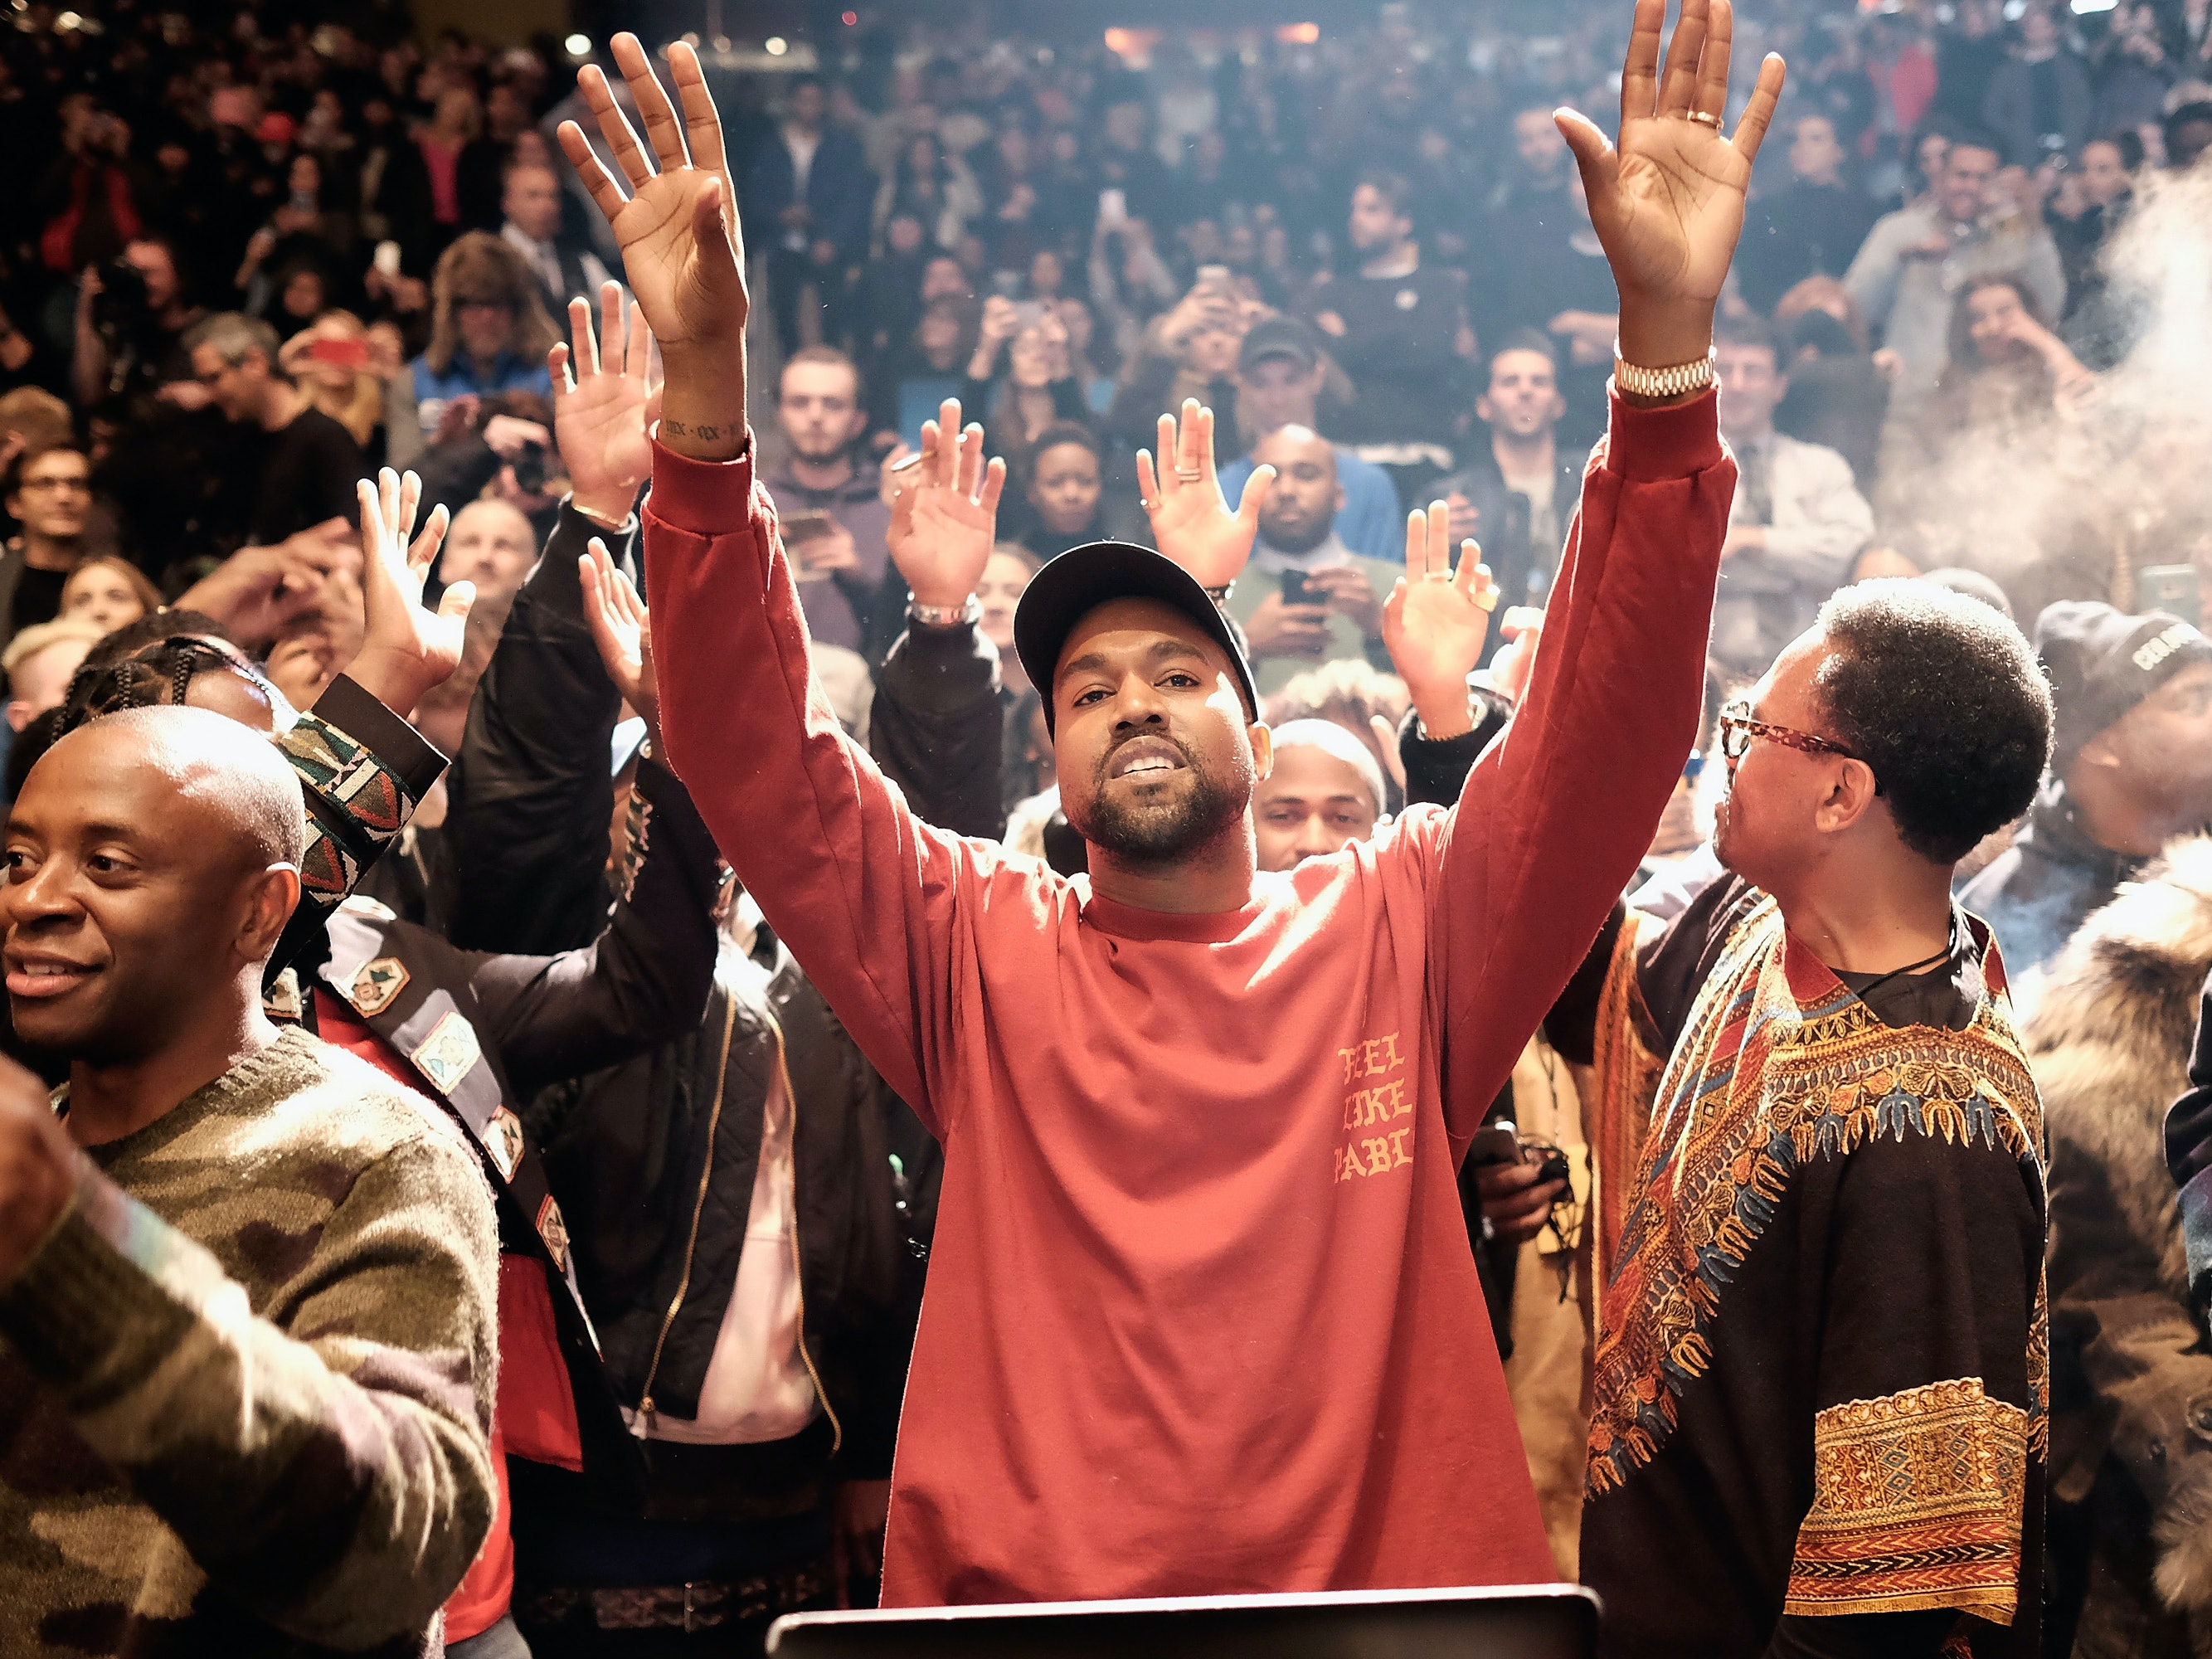 Science: Kanye West Isn't Indecisive, He's Just Emotionally Complex